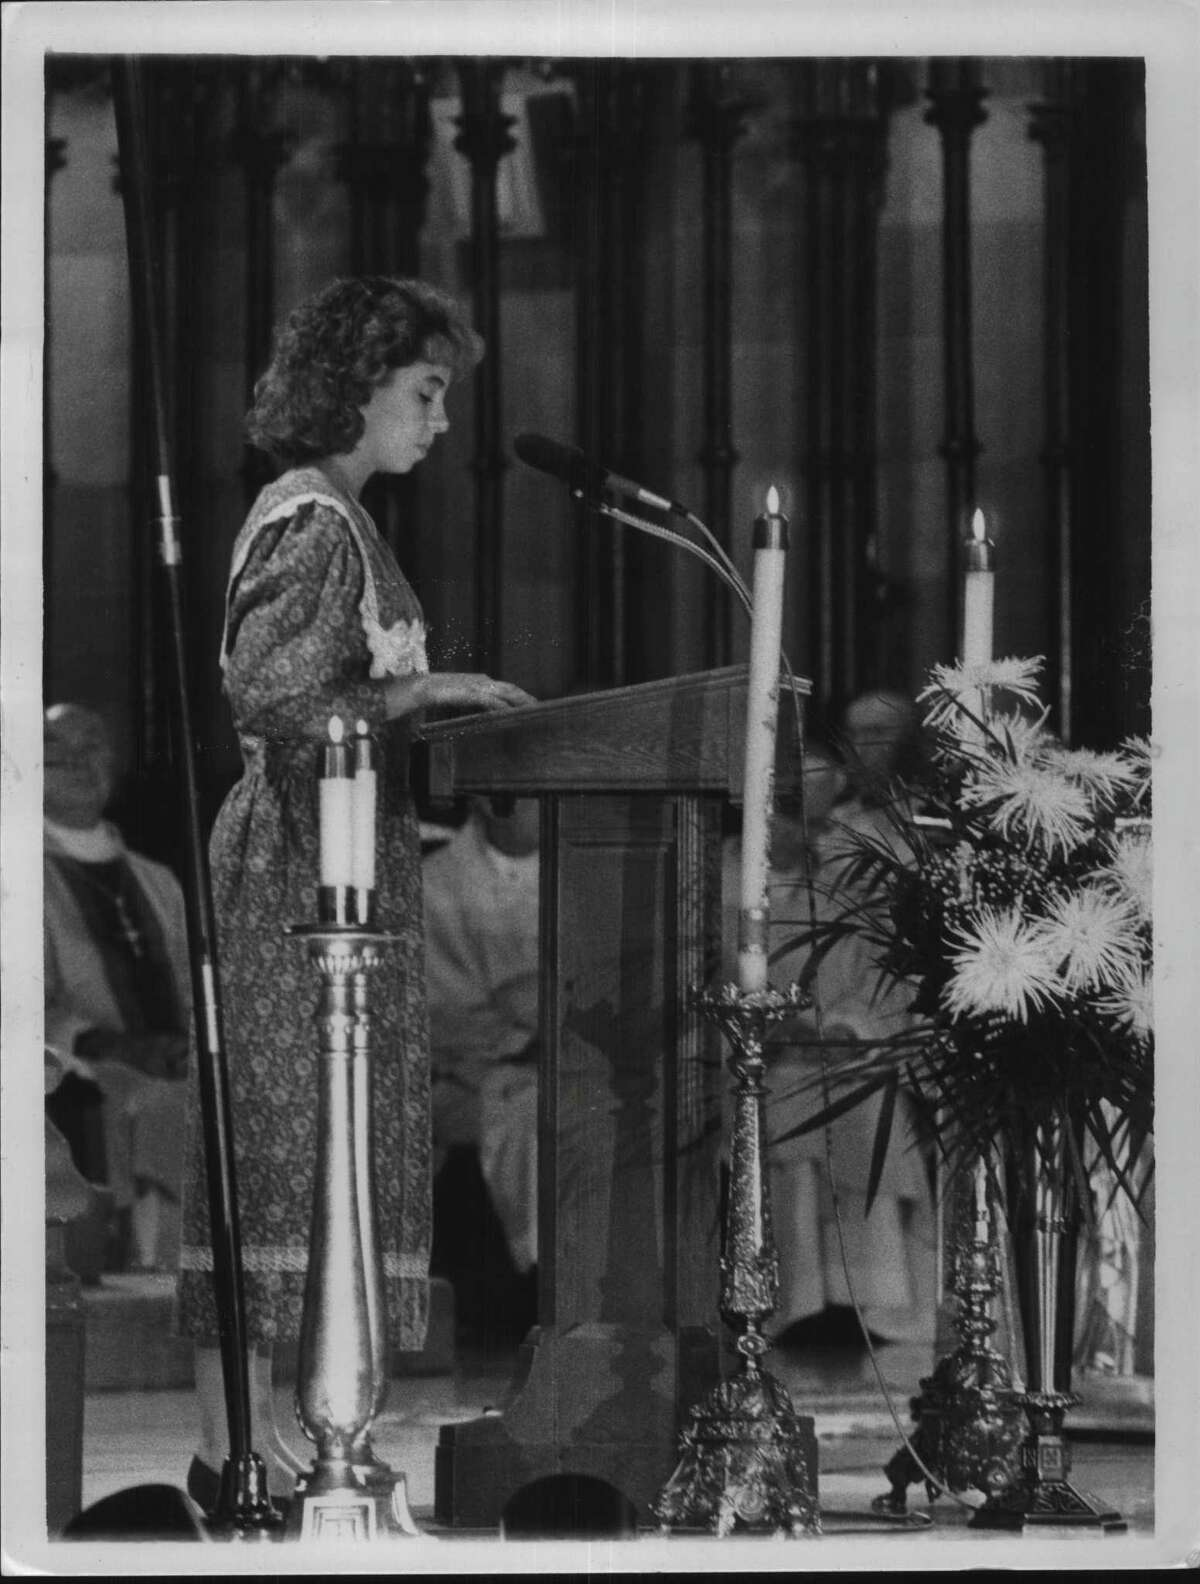 Cathedral of the Immaculate Conception, Albany, new York - Trish Maginn, grand-niece of Bishop Maginn, gives the First Reading in the Liturgy of the Word. August 24, 1984 (Paul D. Kniskern, Sr./Times Union Archive)